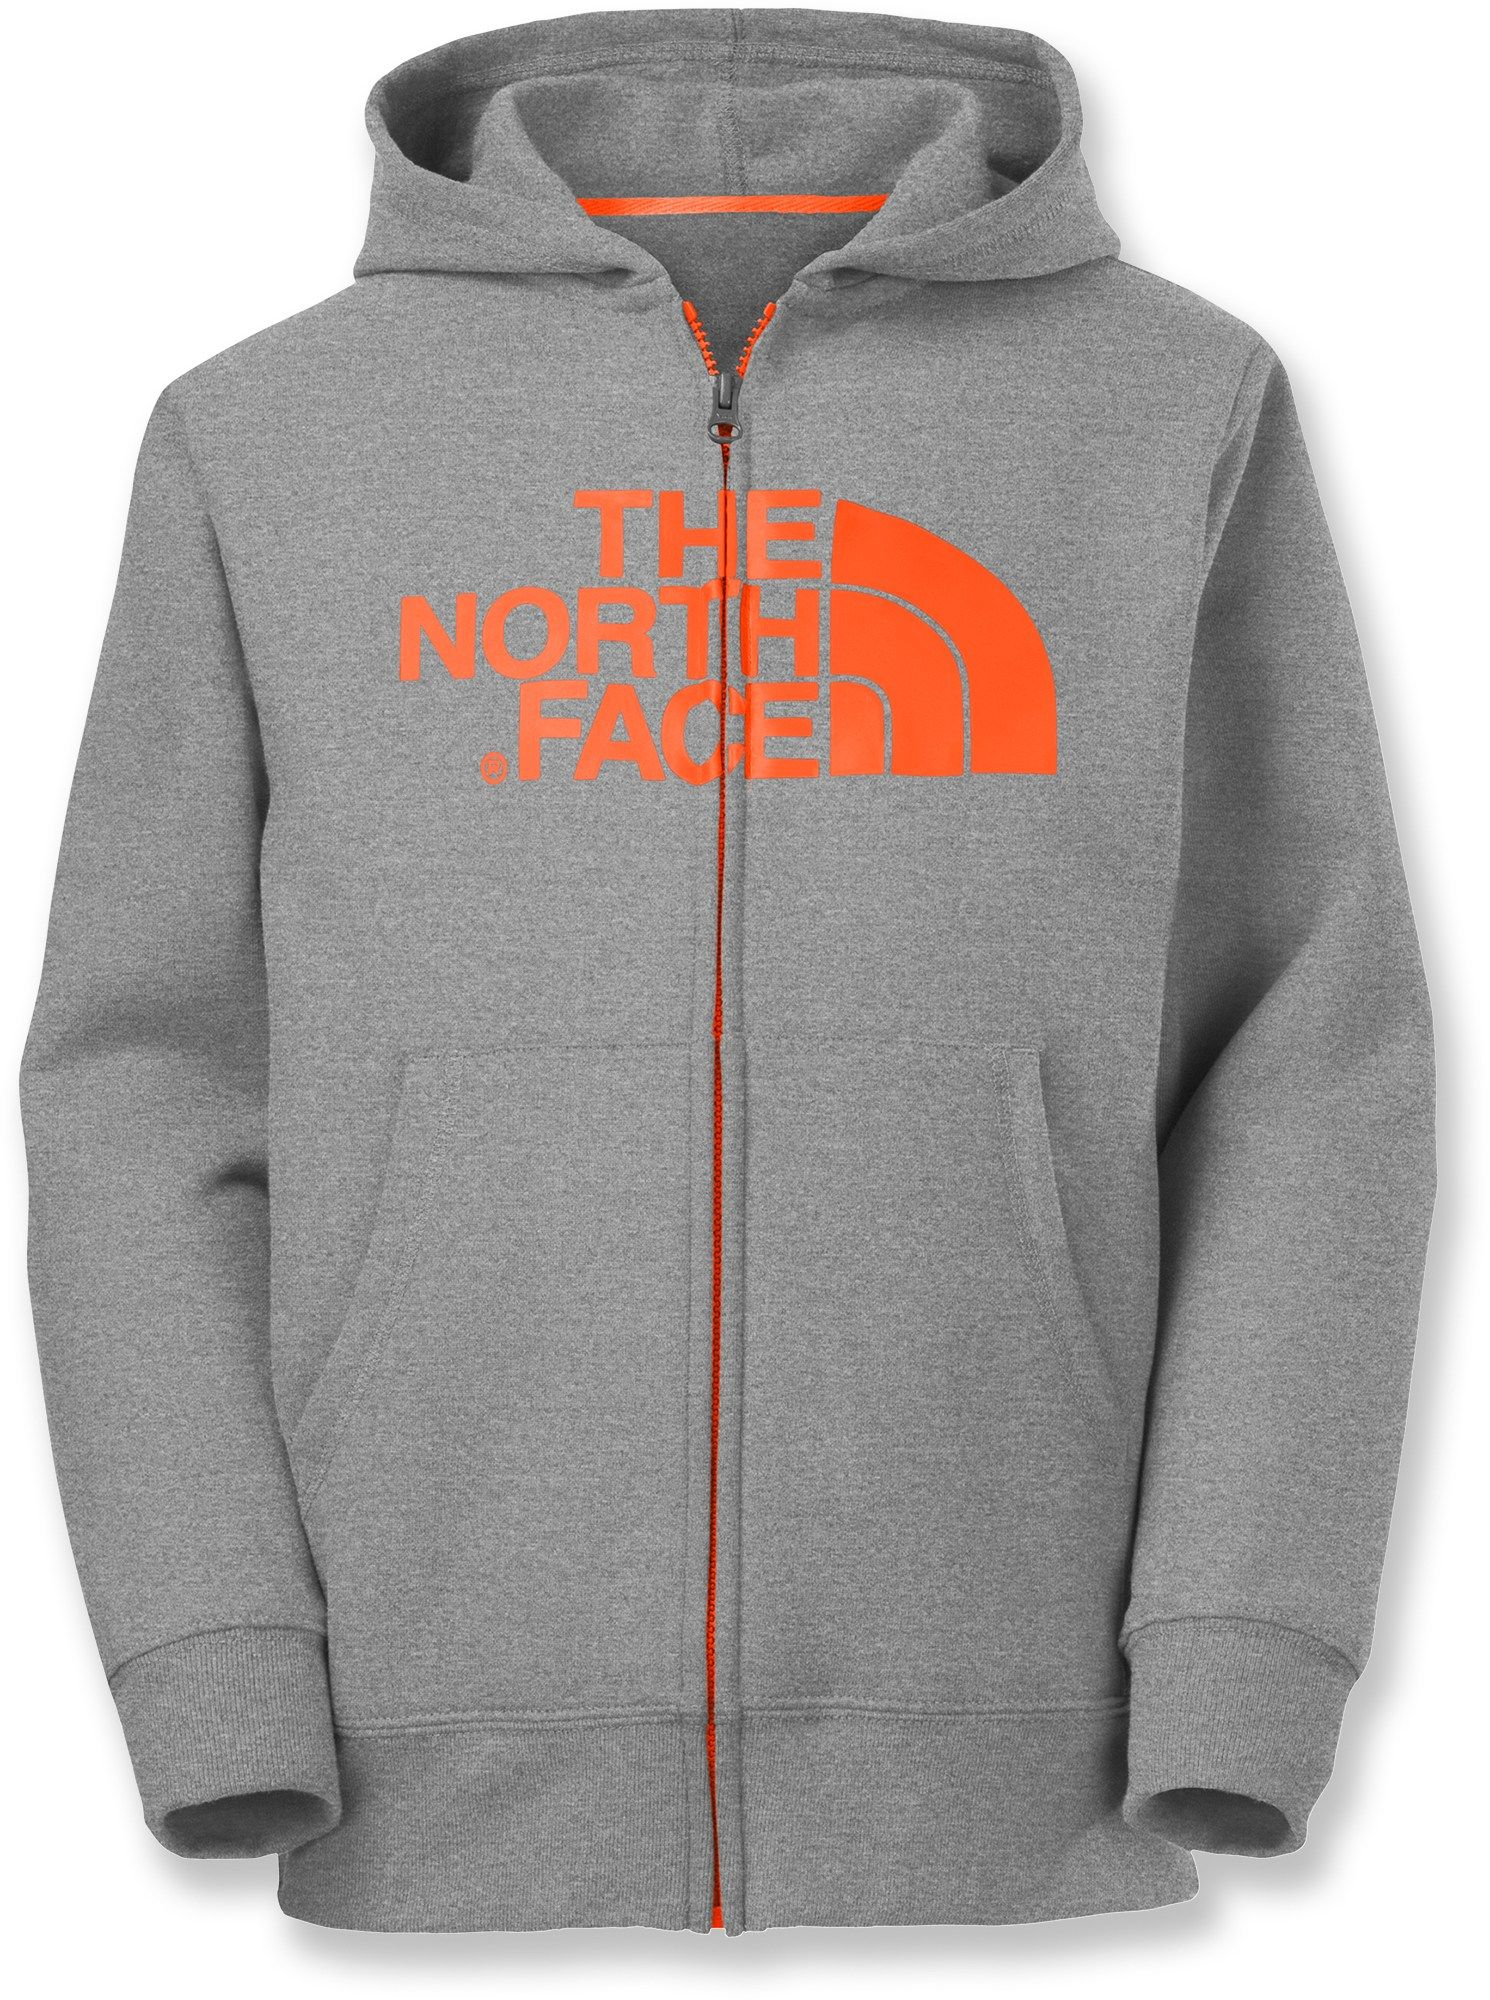 e818c40b8 The North Face Male Half Dome Full-Zip Fleece Hoodie - Boys ...